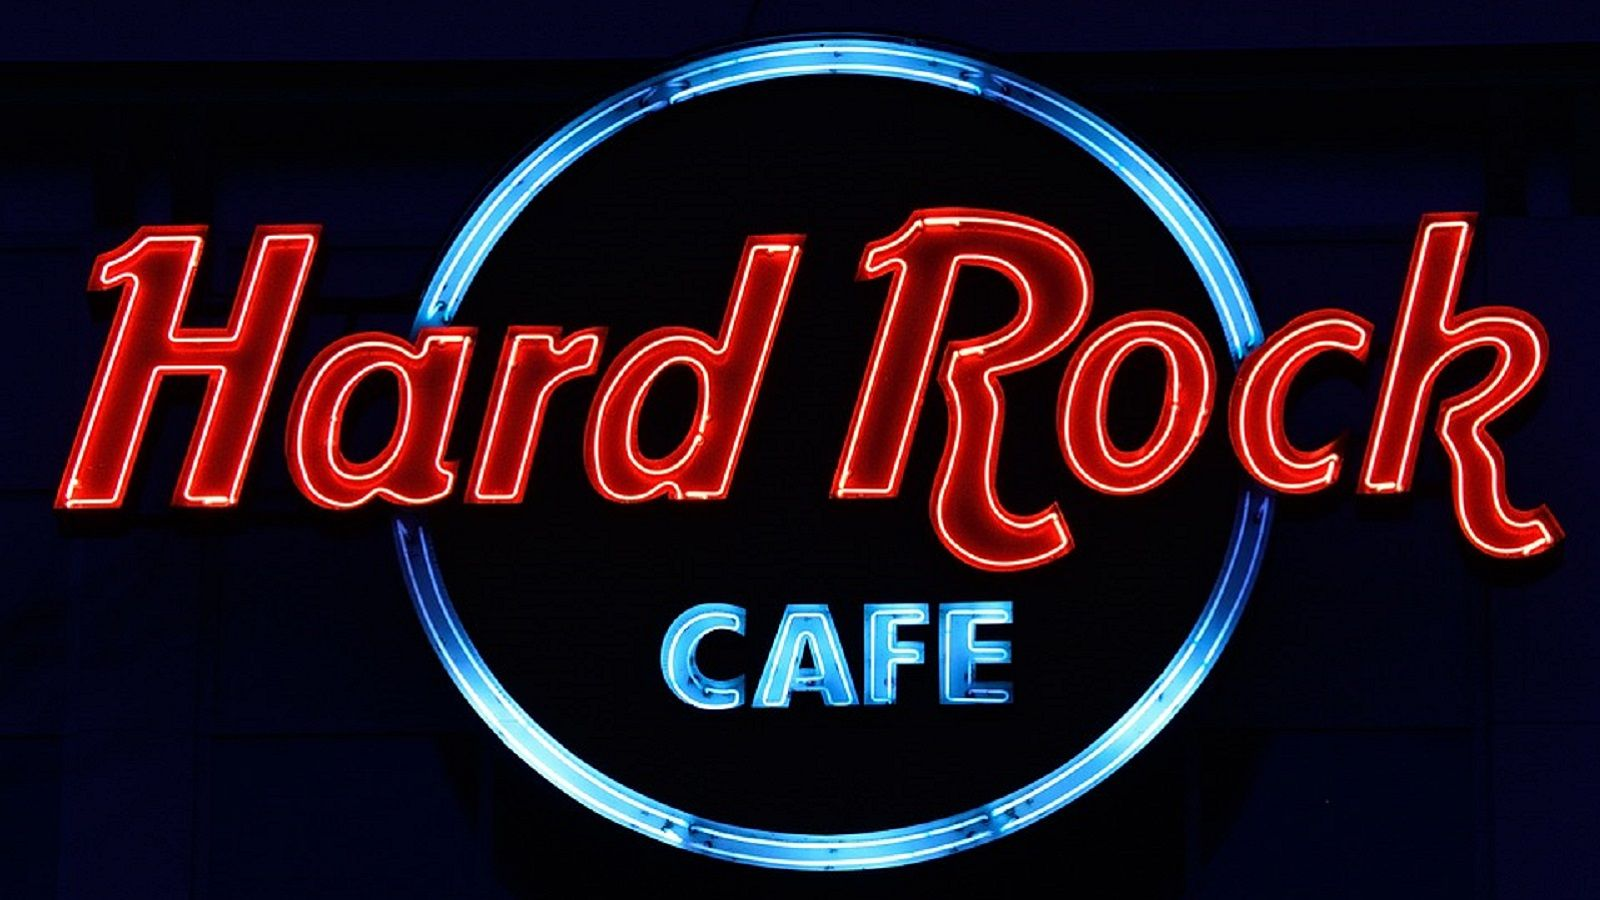 Boston Music Venues - Hard Rock Café